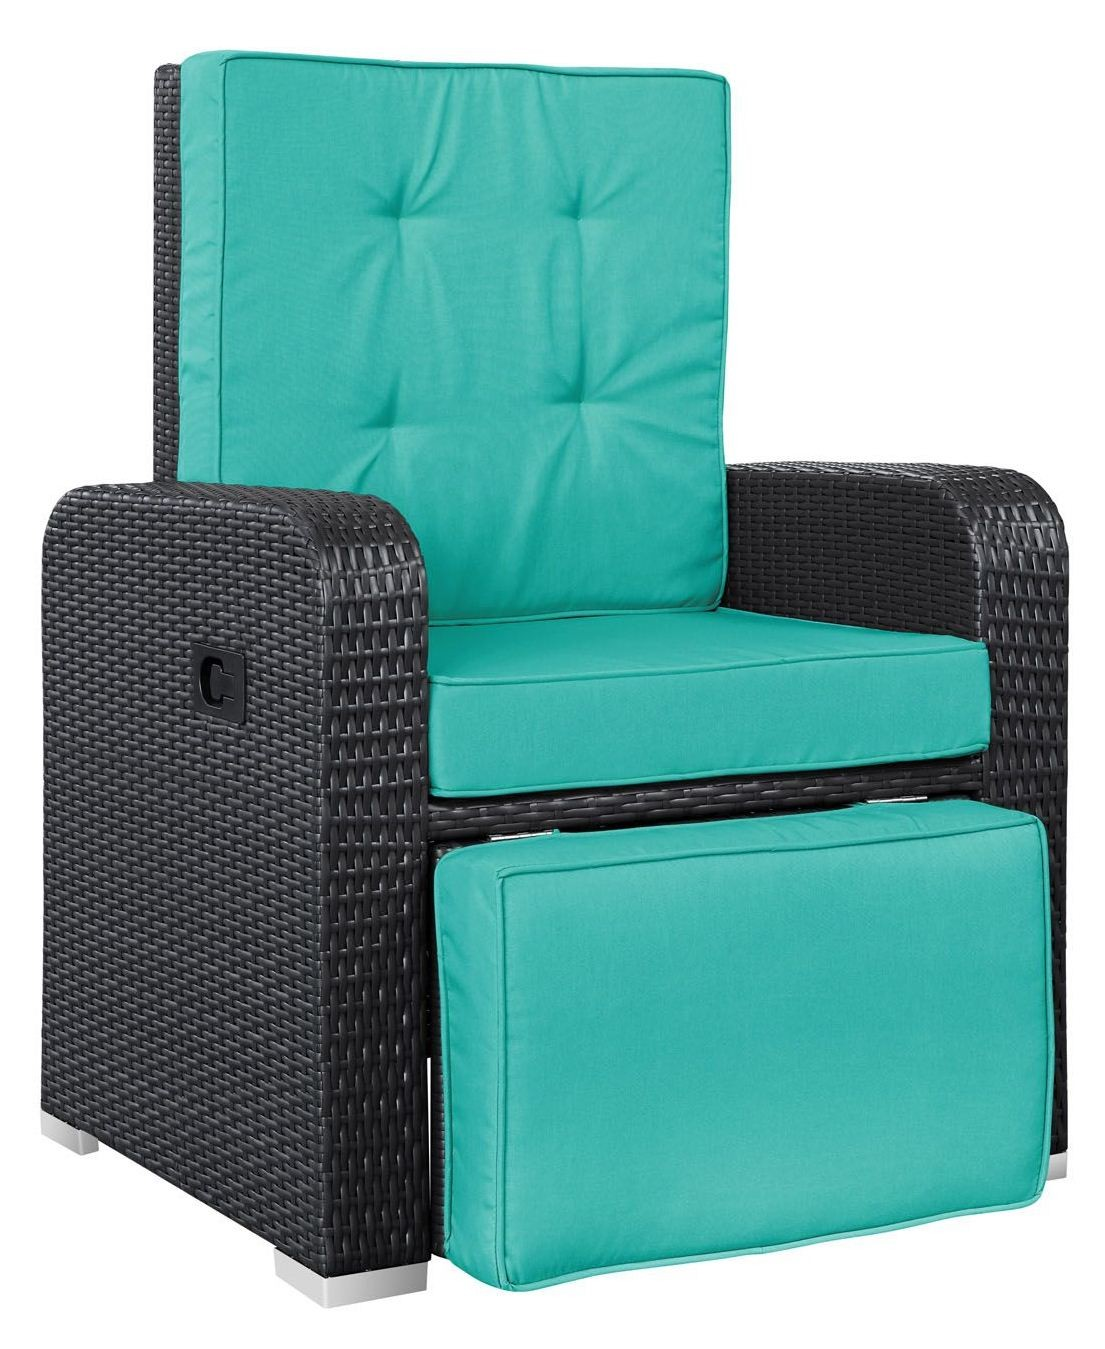 mence Turquoise Patio Outdoor Patio Armchair Recliner from Renegade EEI 9